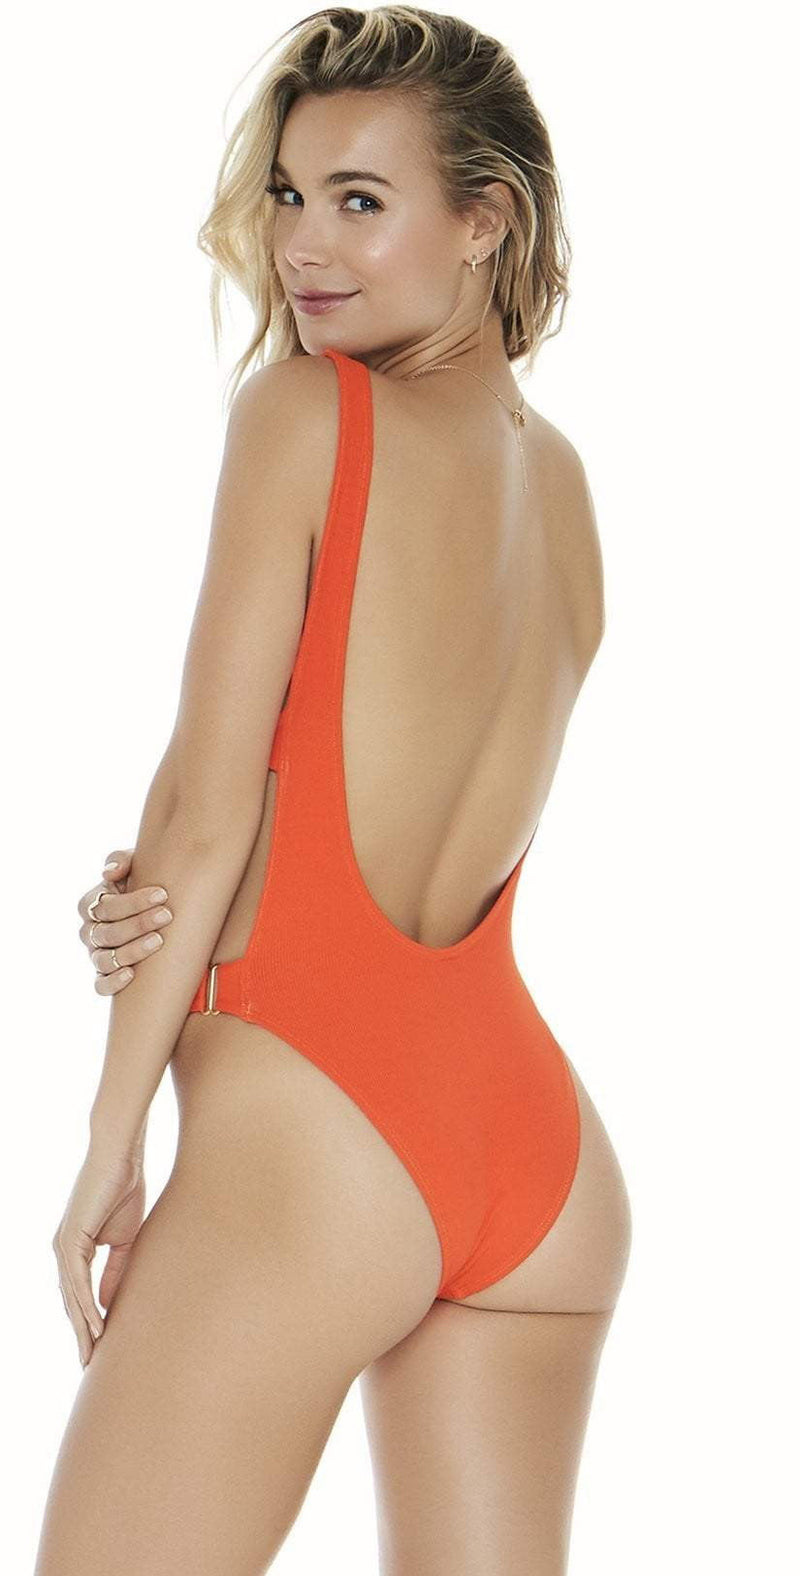 L Space Mayra One-Piece in Poppy RHMYMC18-POP: